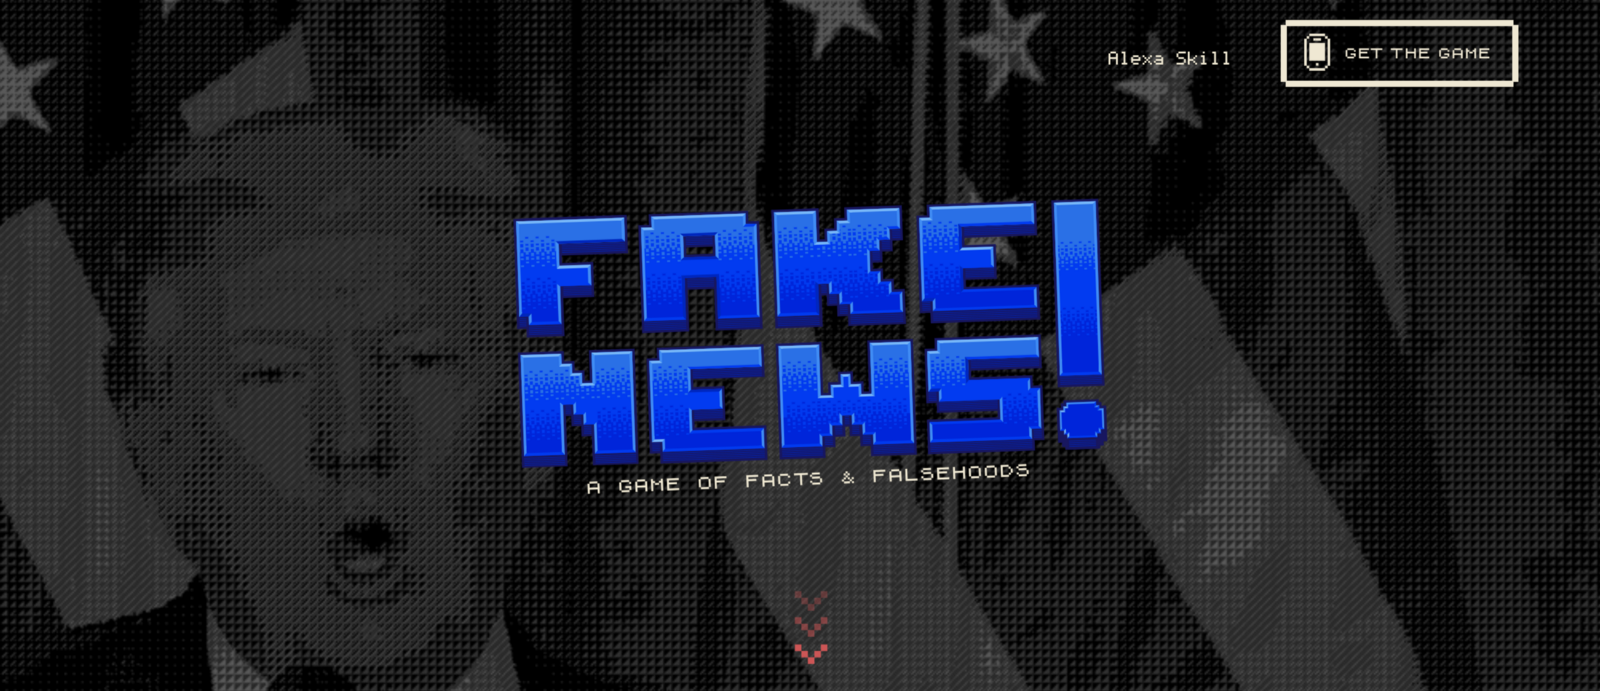 Fake News game screenshot.png